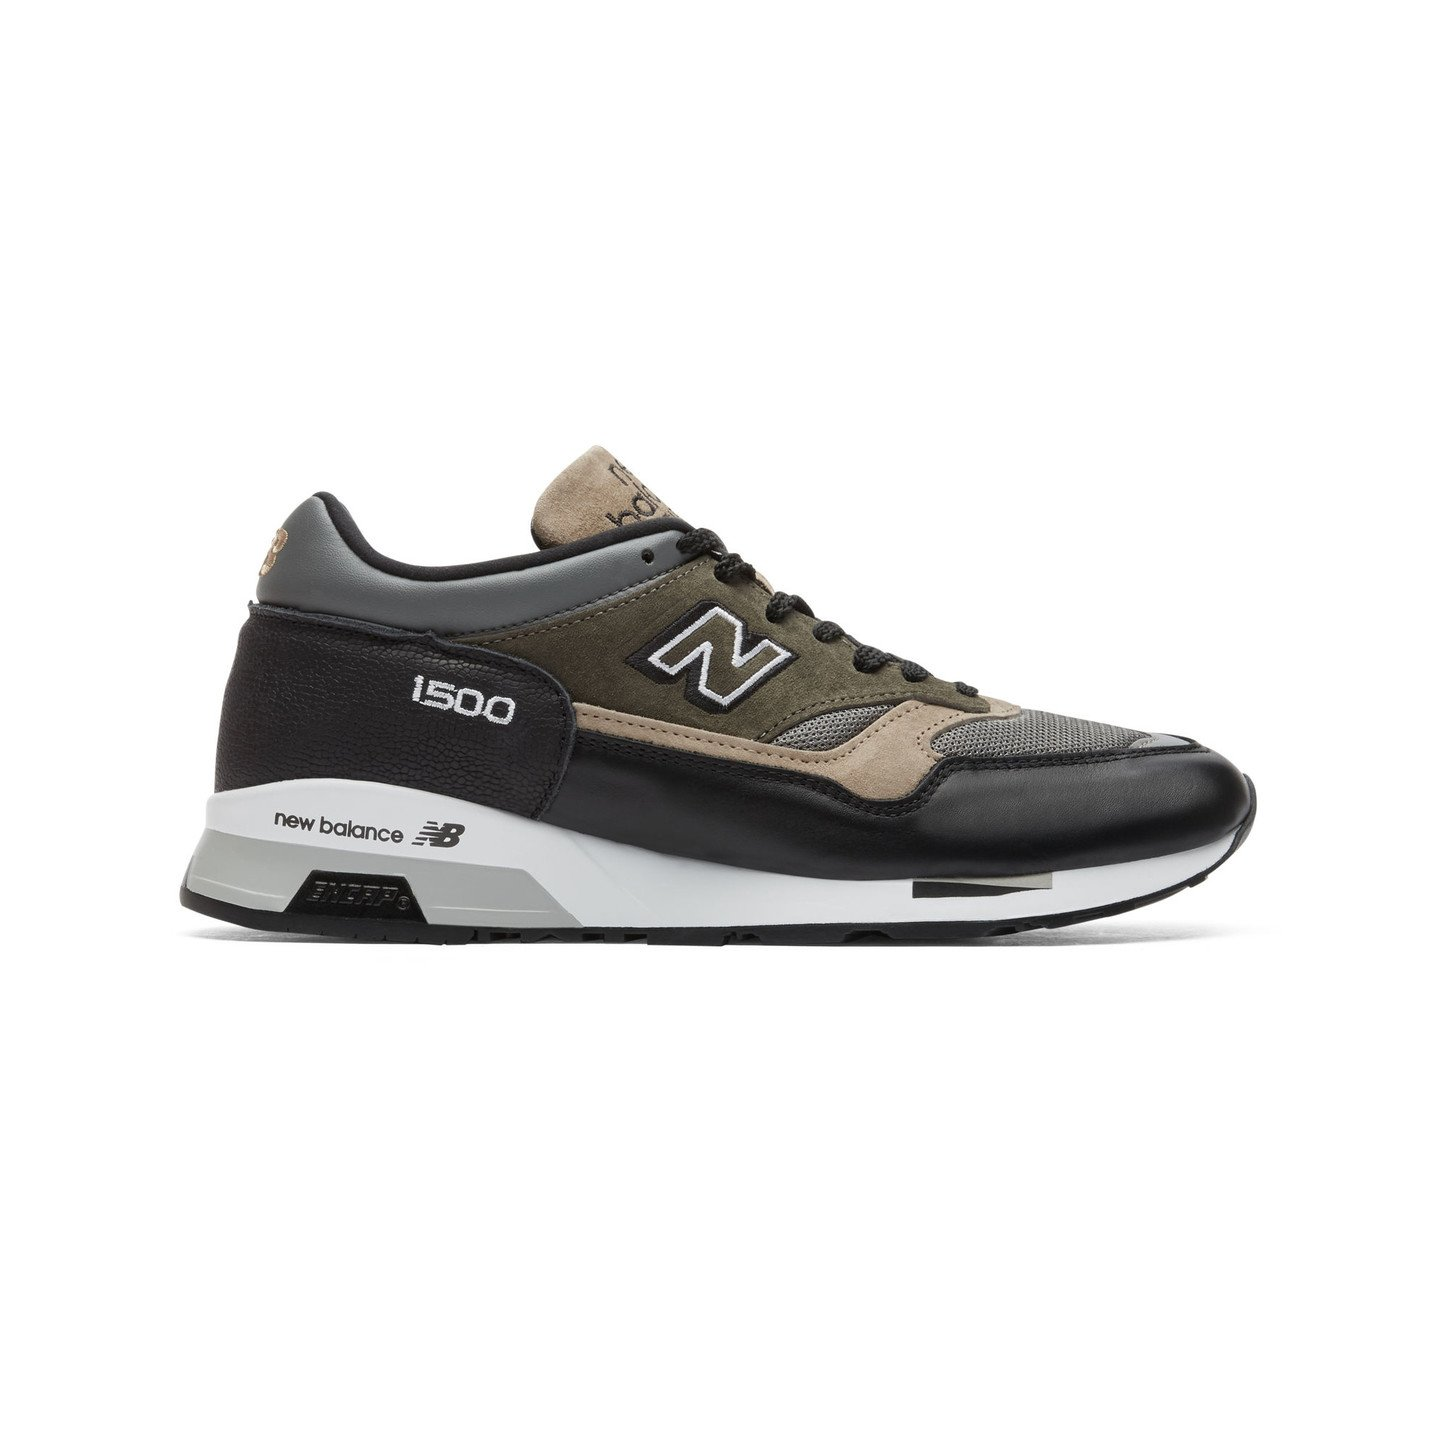 New Balance M1500 FDS - Made in England Desert Shade M1500FDS